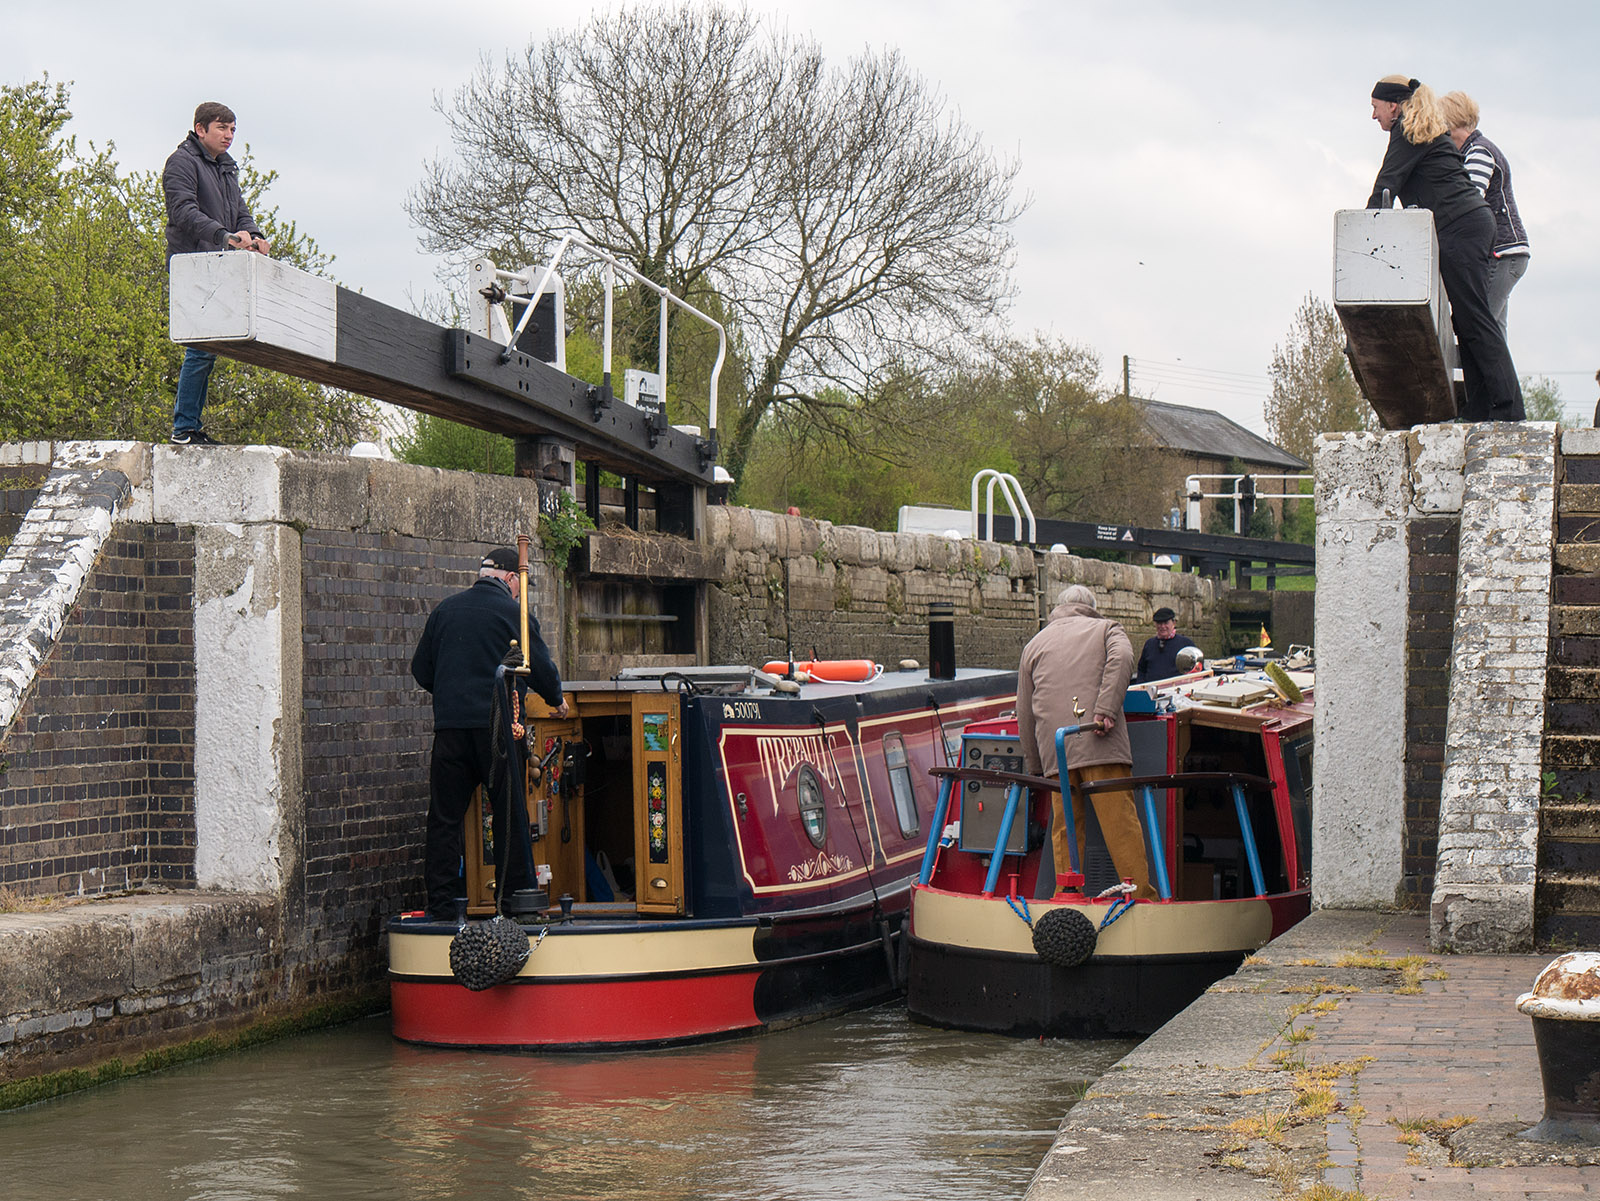 About to close the lower lock gates on the lowest lock, three boats inside going up the locks